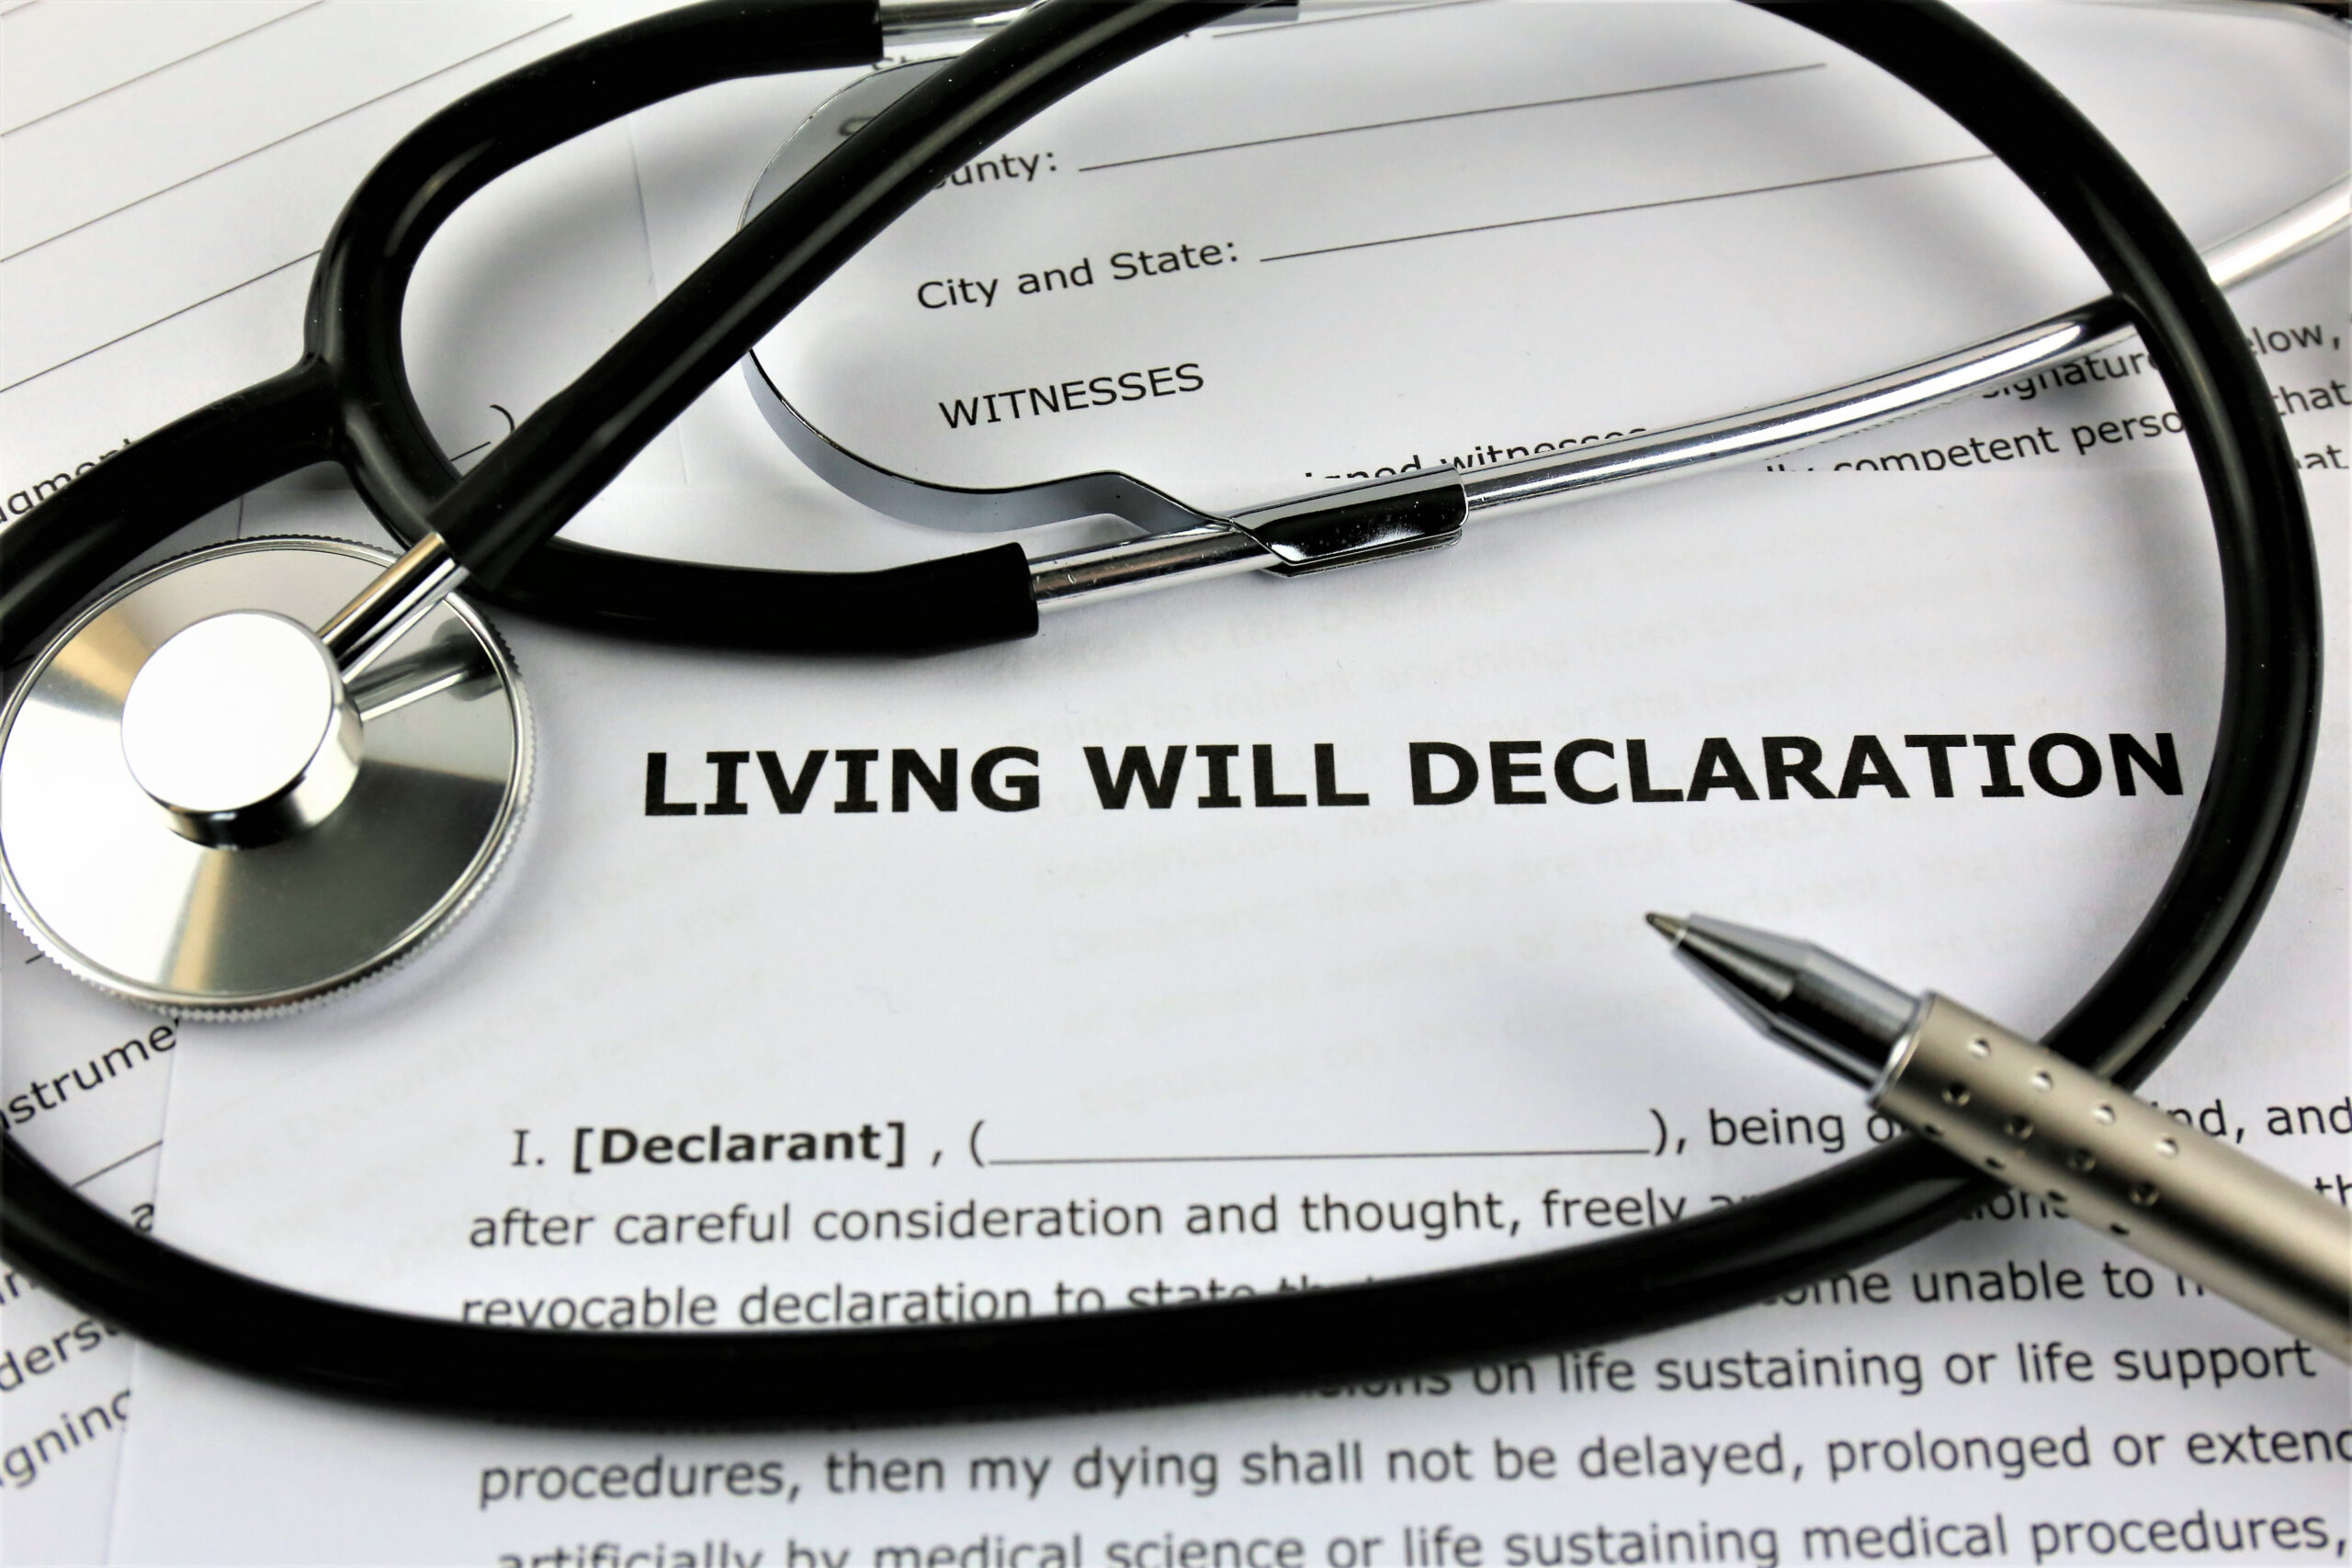 What Is The Difference Between A Last Will And Testament And A Living Will?